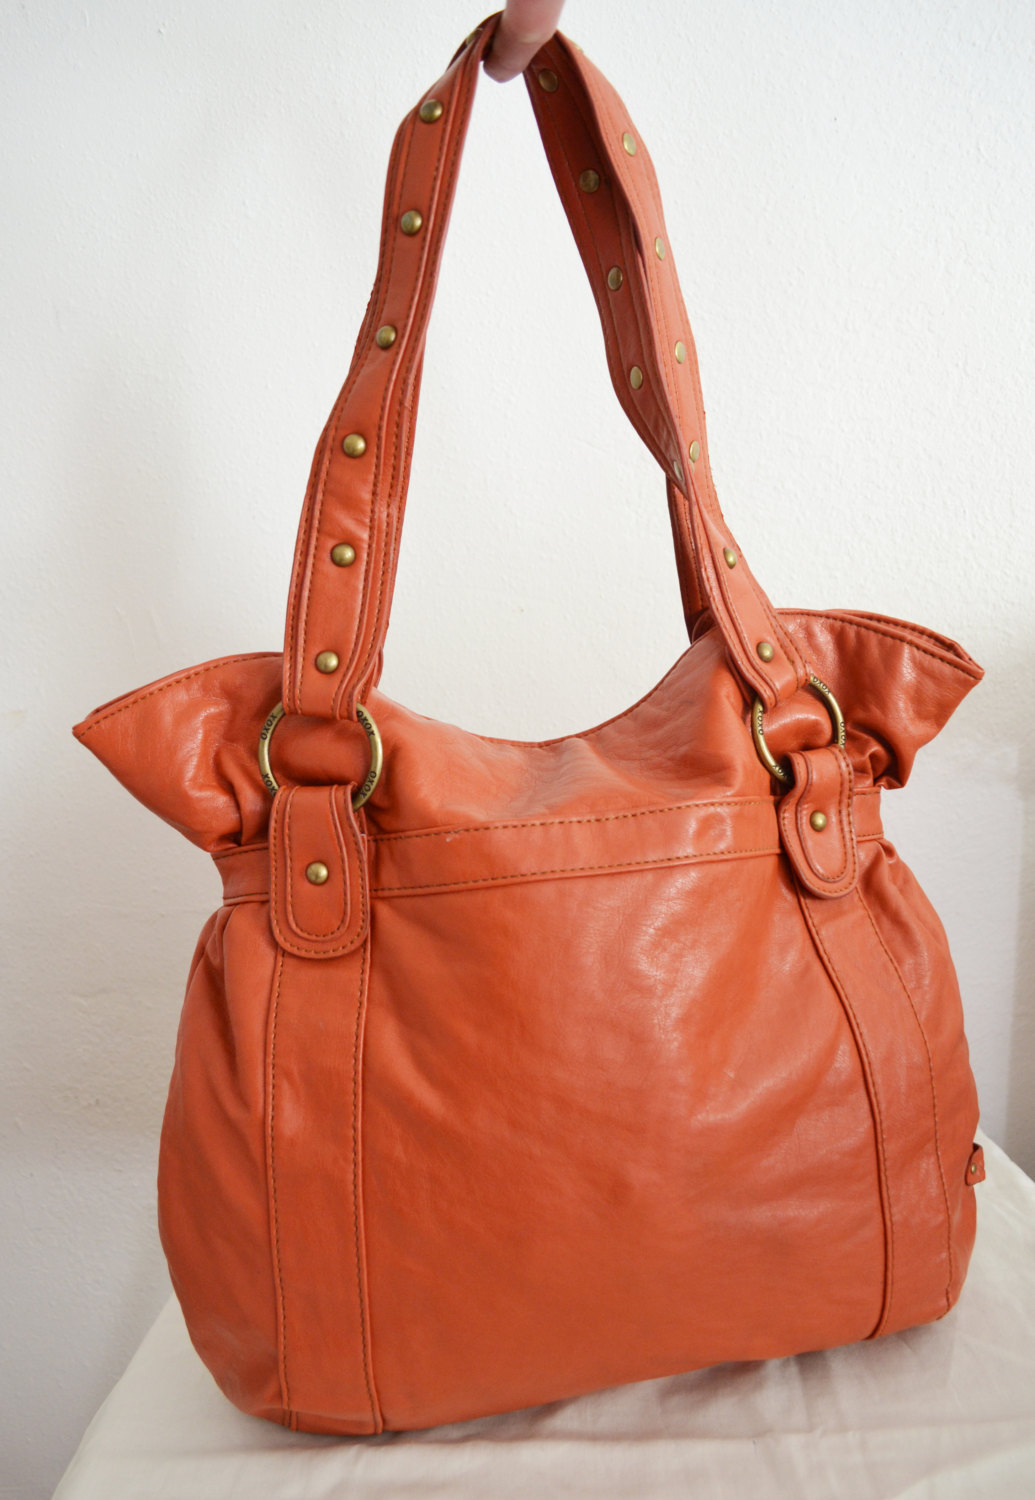 Free Ship Large Faux Leather Purse Orange XOXO Shoulder Bag